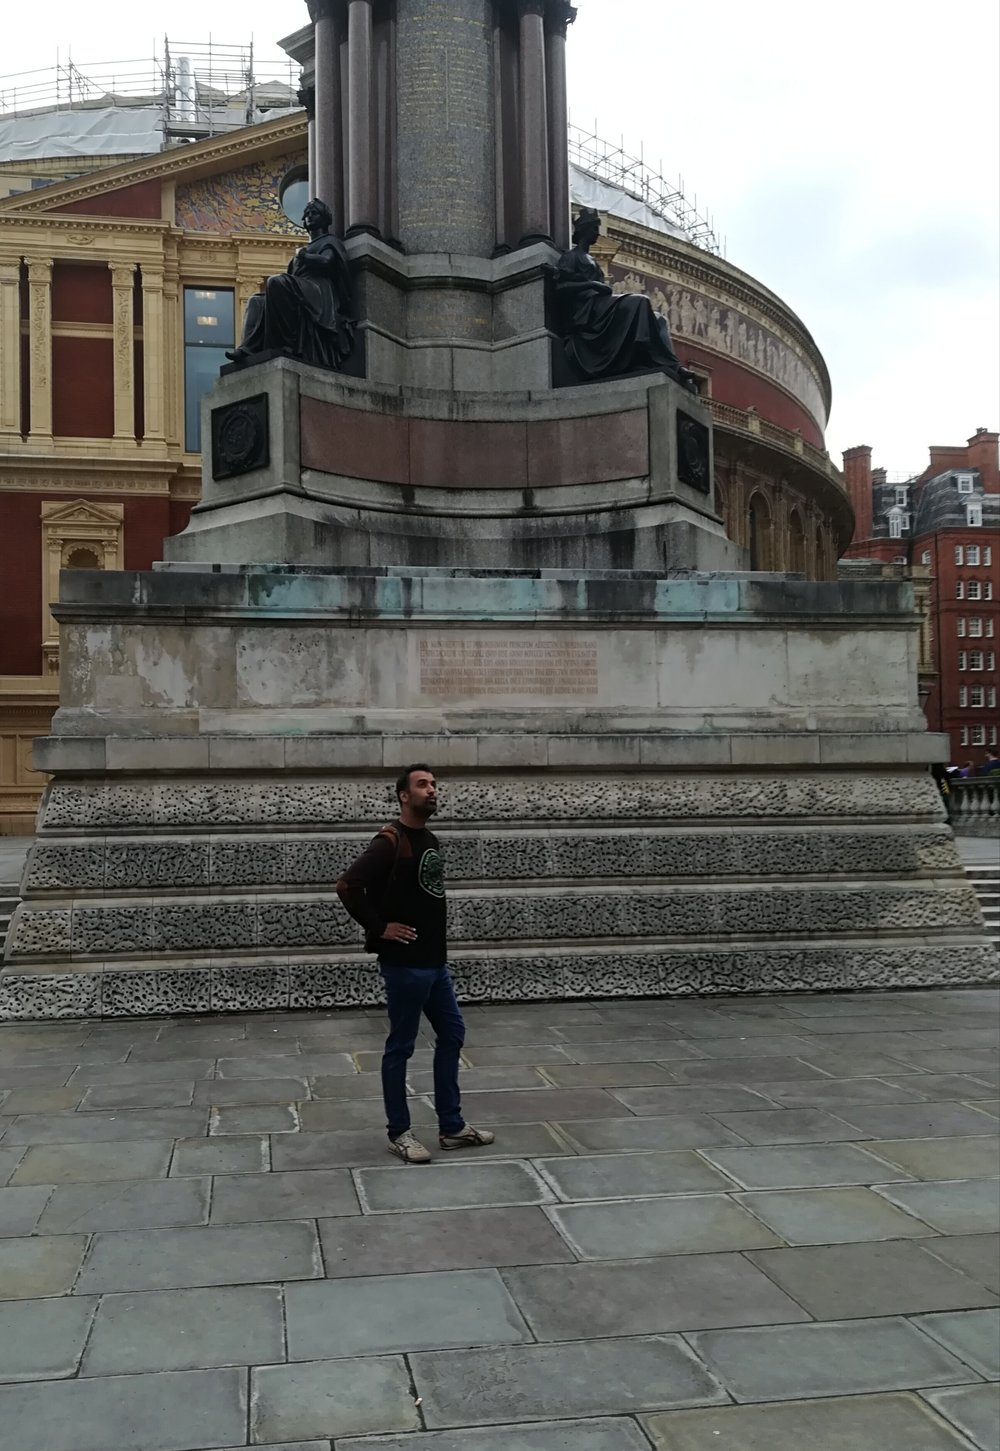 Me, chilling outside the Royal Albert Hall before the concert.